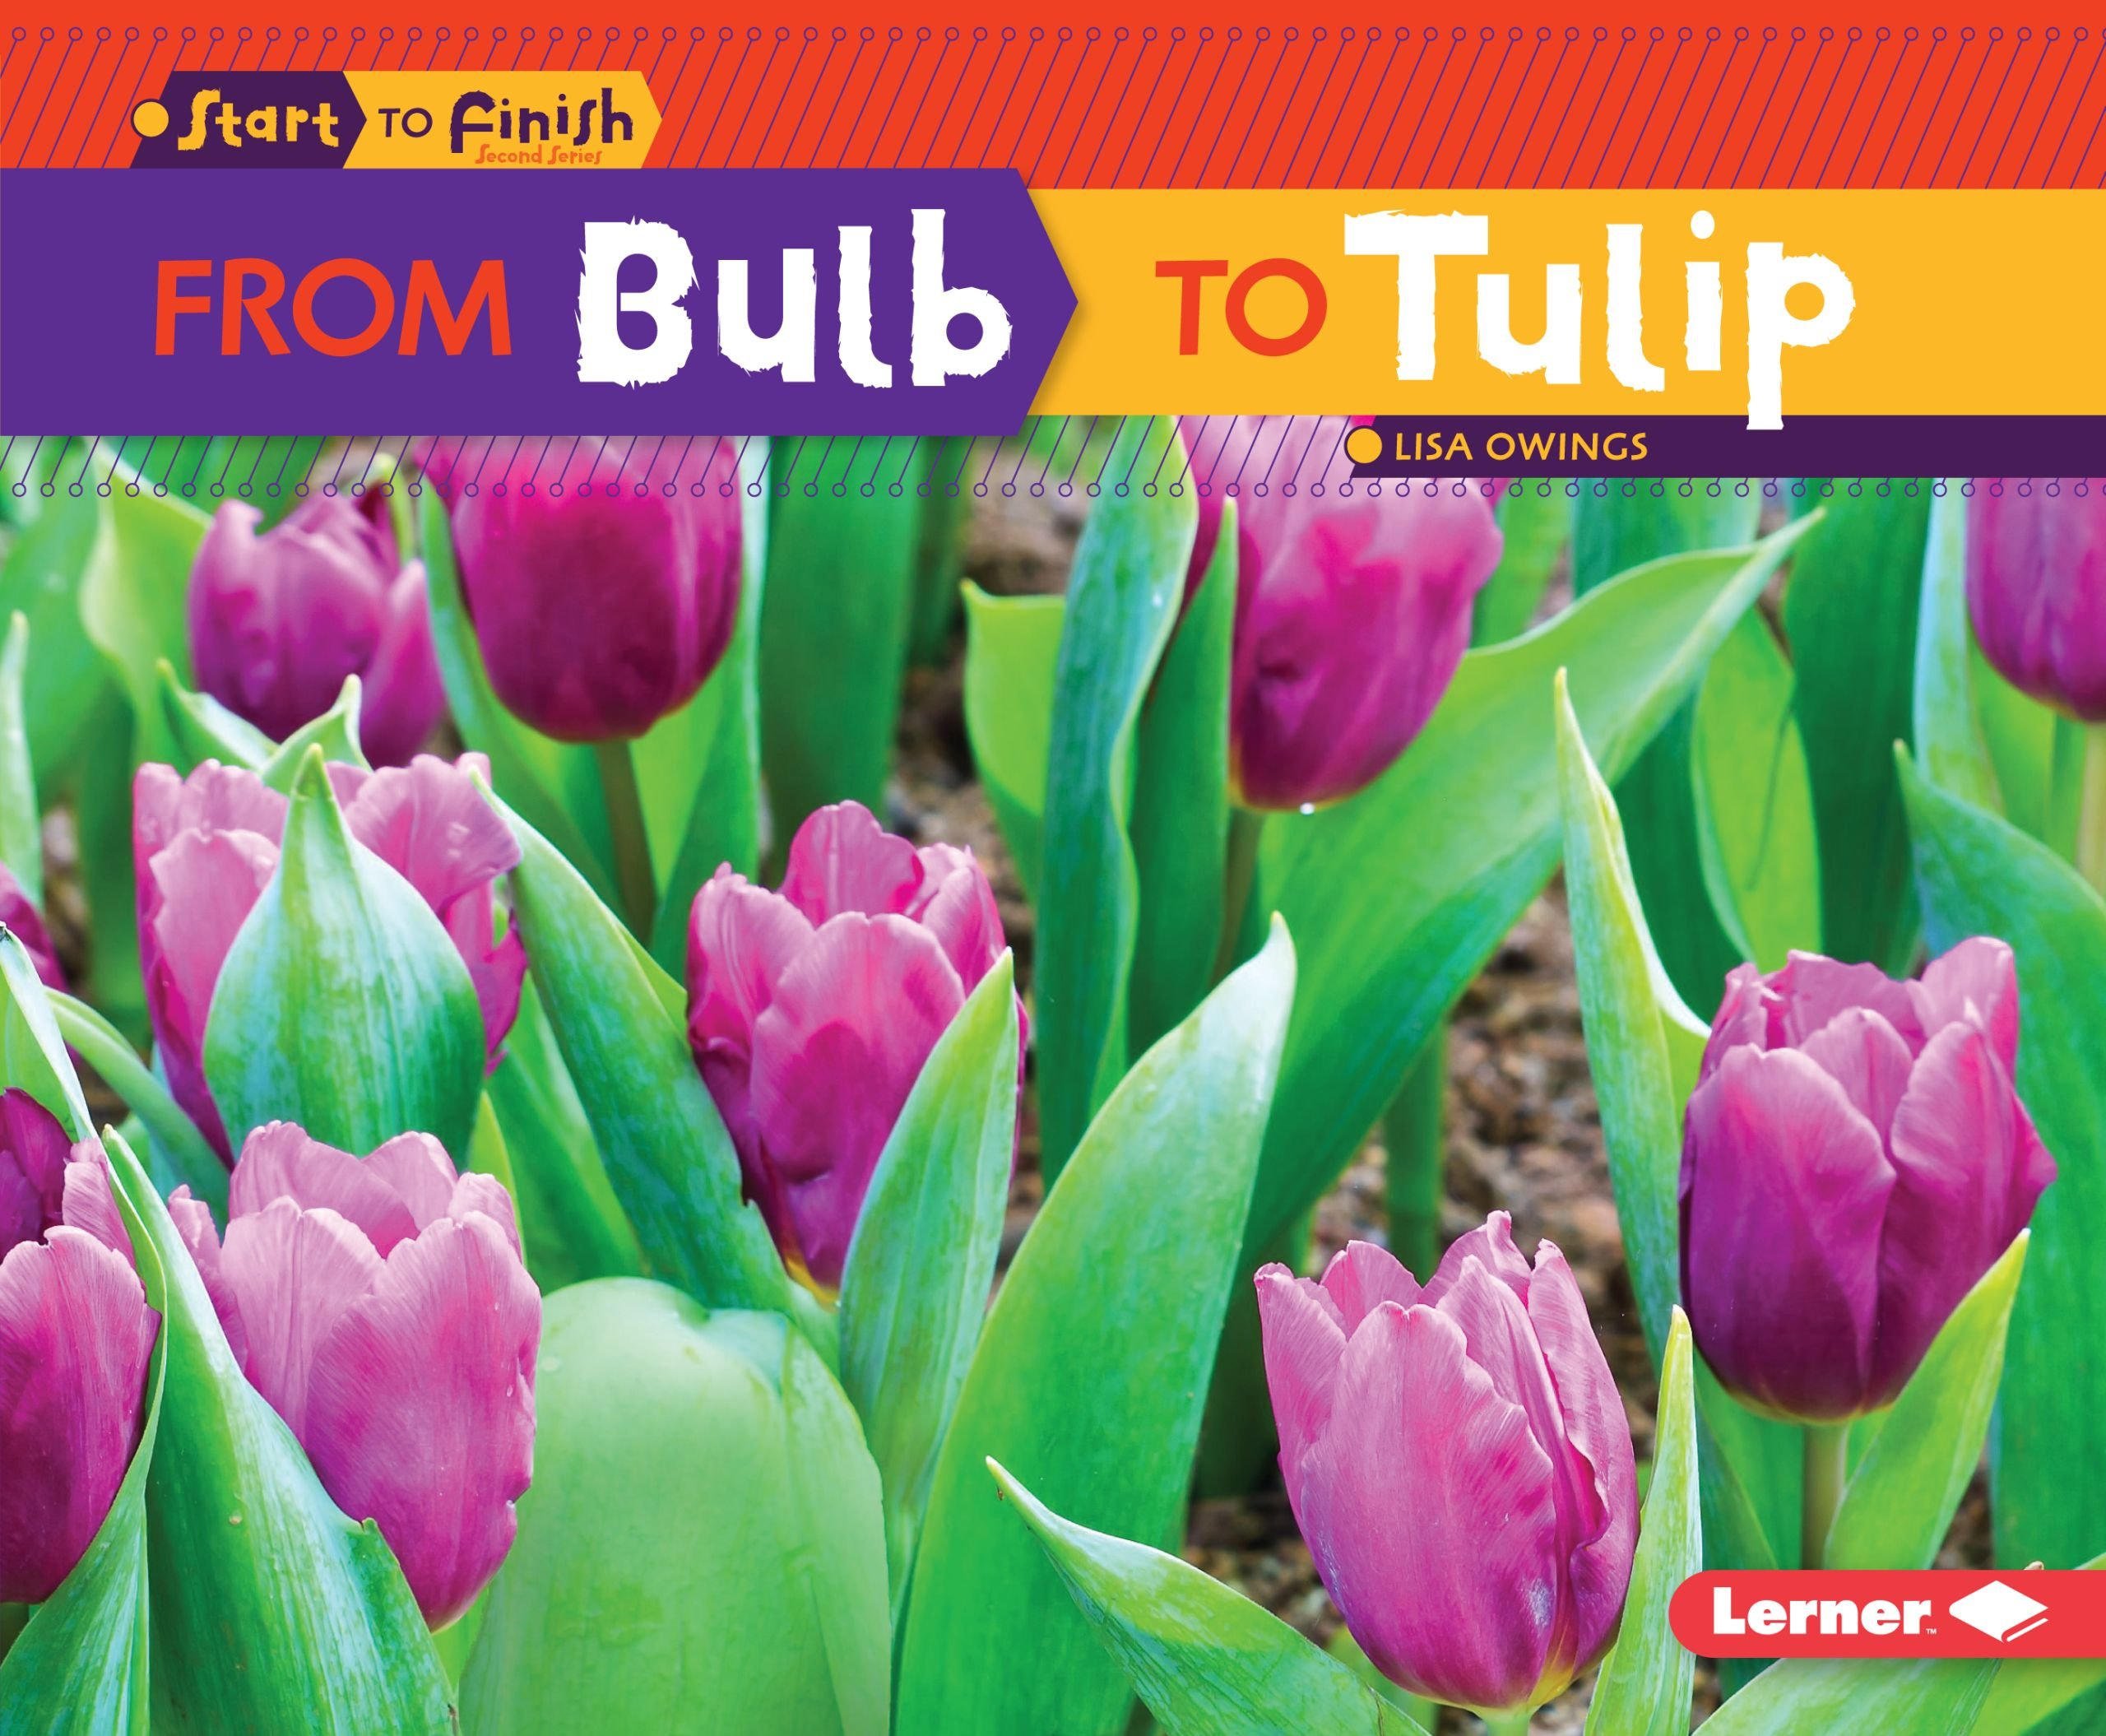 From Bulb to Tulip (Start to Finish, Second Series) by Lerner Publications TM